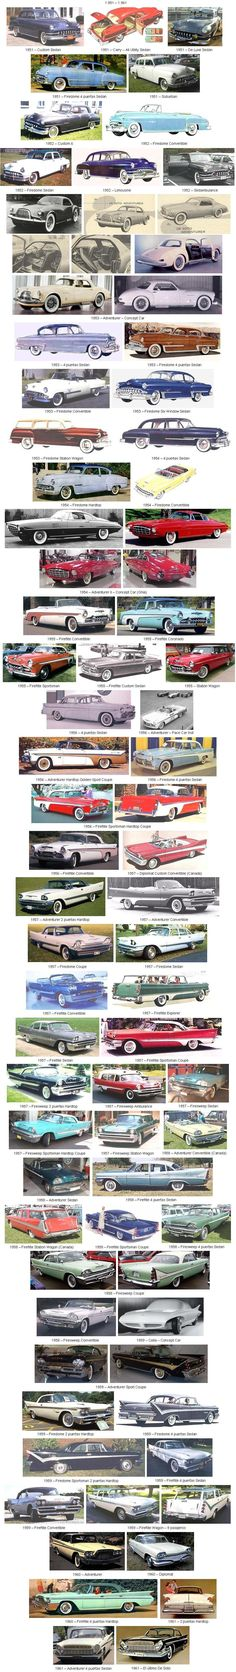 DE SOTO HISTORIA--Si!  SealingsAndExpungements.com...  888-9-EXPUNGE (888-939-7864)... Free evaluations..low money down...Easy payments.. 'Seal past mistakes. Open new opportunities.'